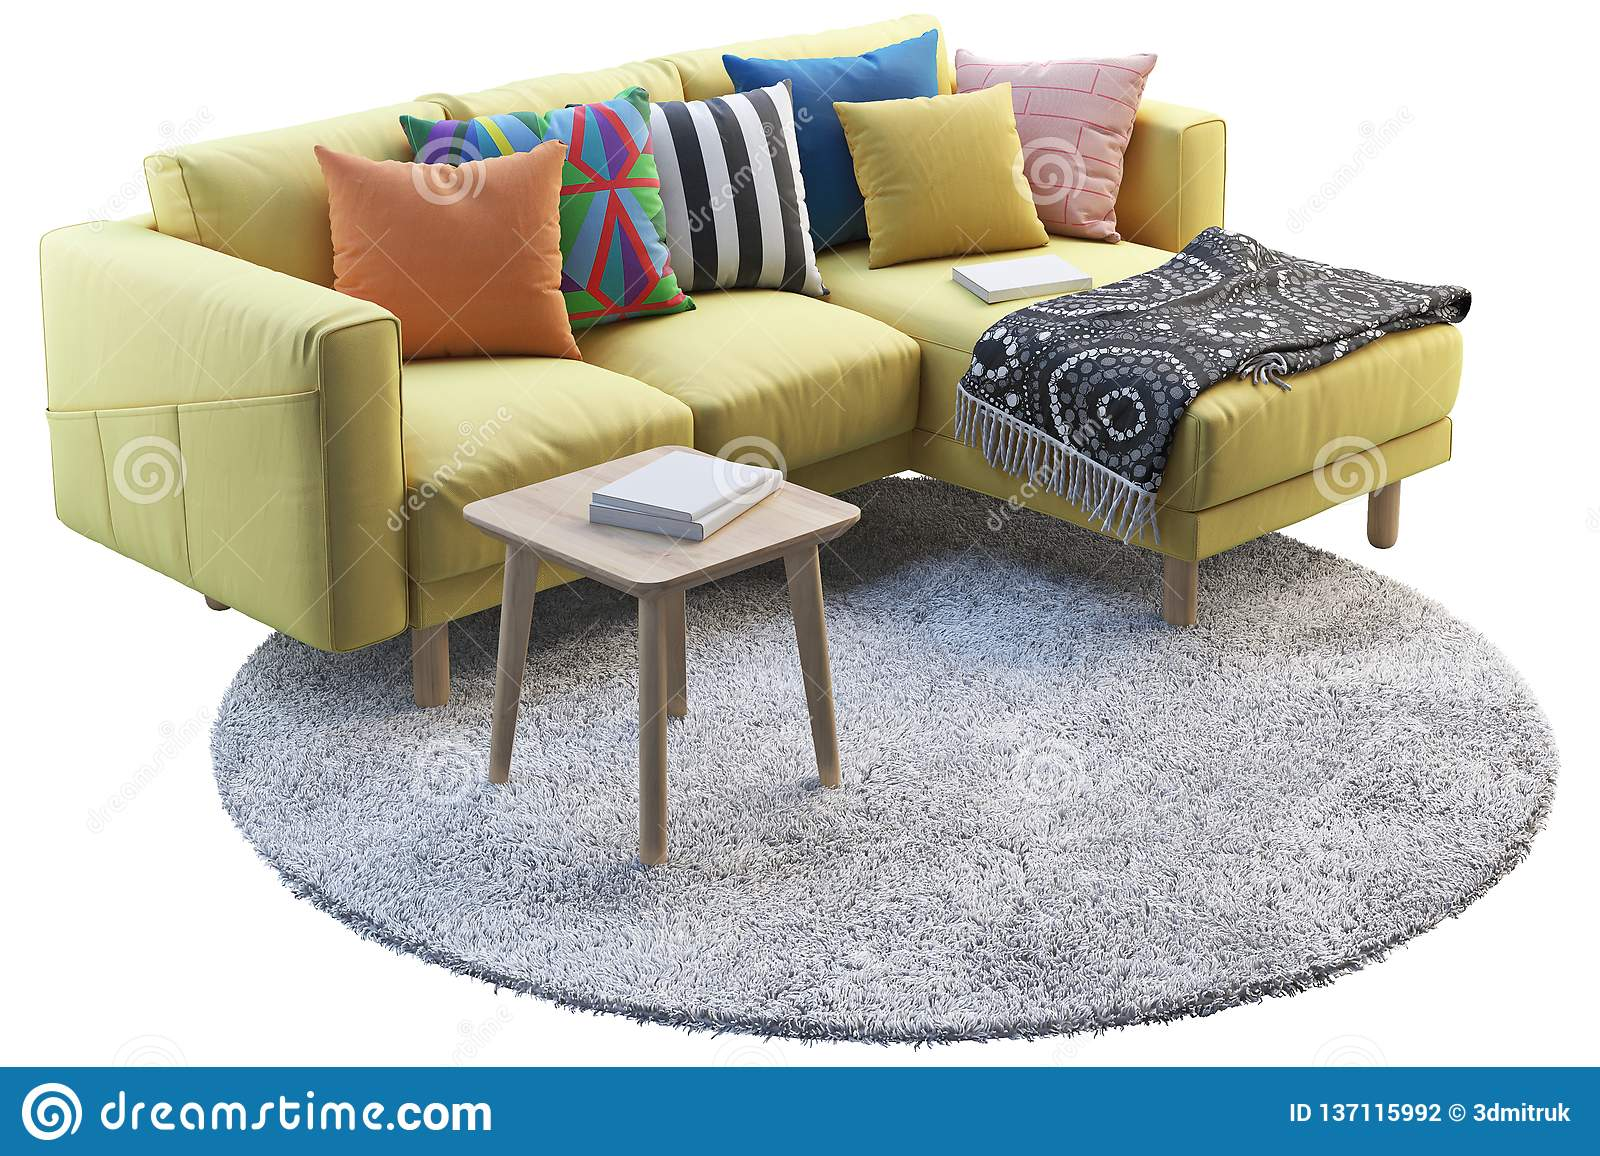 https www dreamstime com yellow fabric sofa gray rug wooden coffee table d render d render yellow fabric sofa chaise lounge gray round rug image137115992